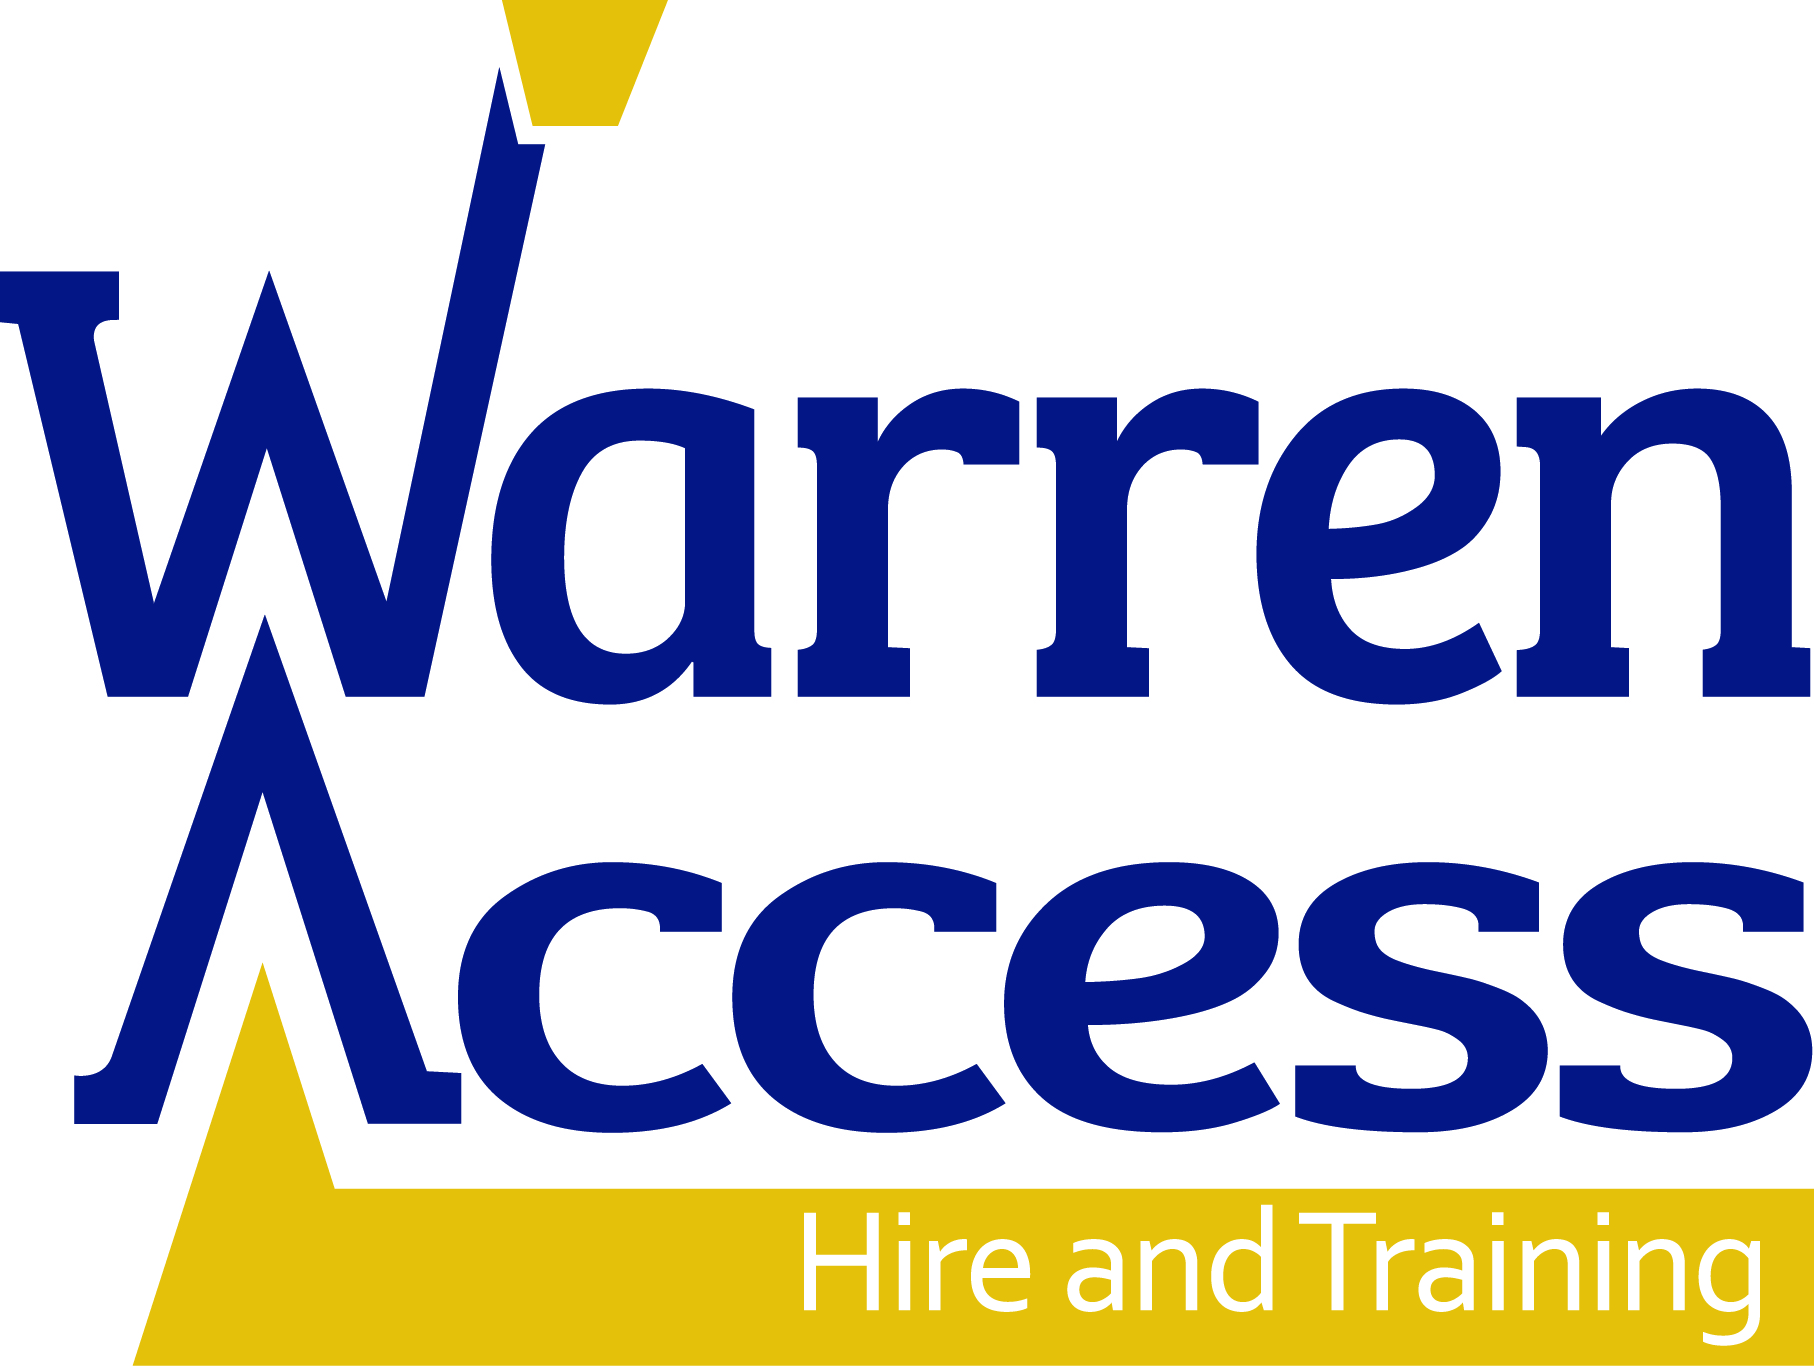 DIRECTORY-LISTING-training-warren-access-3